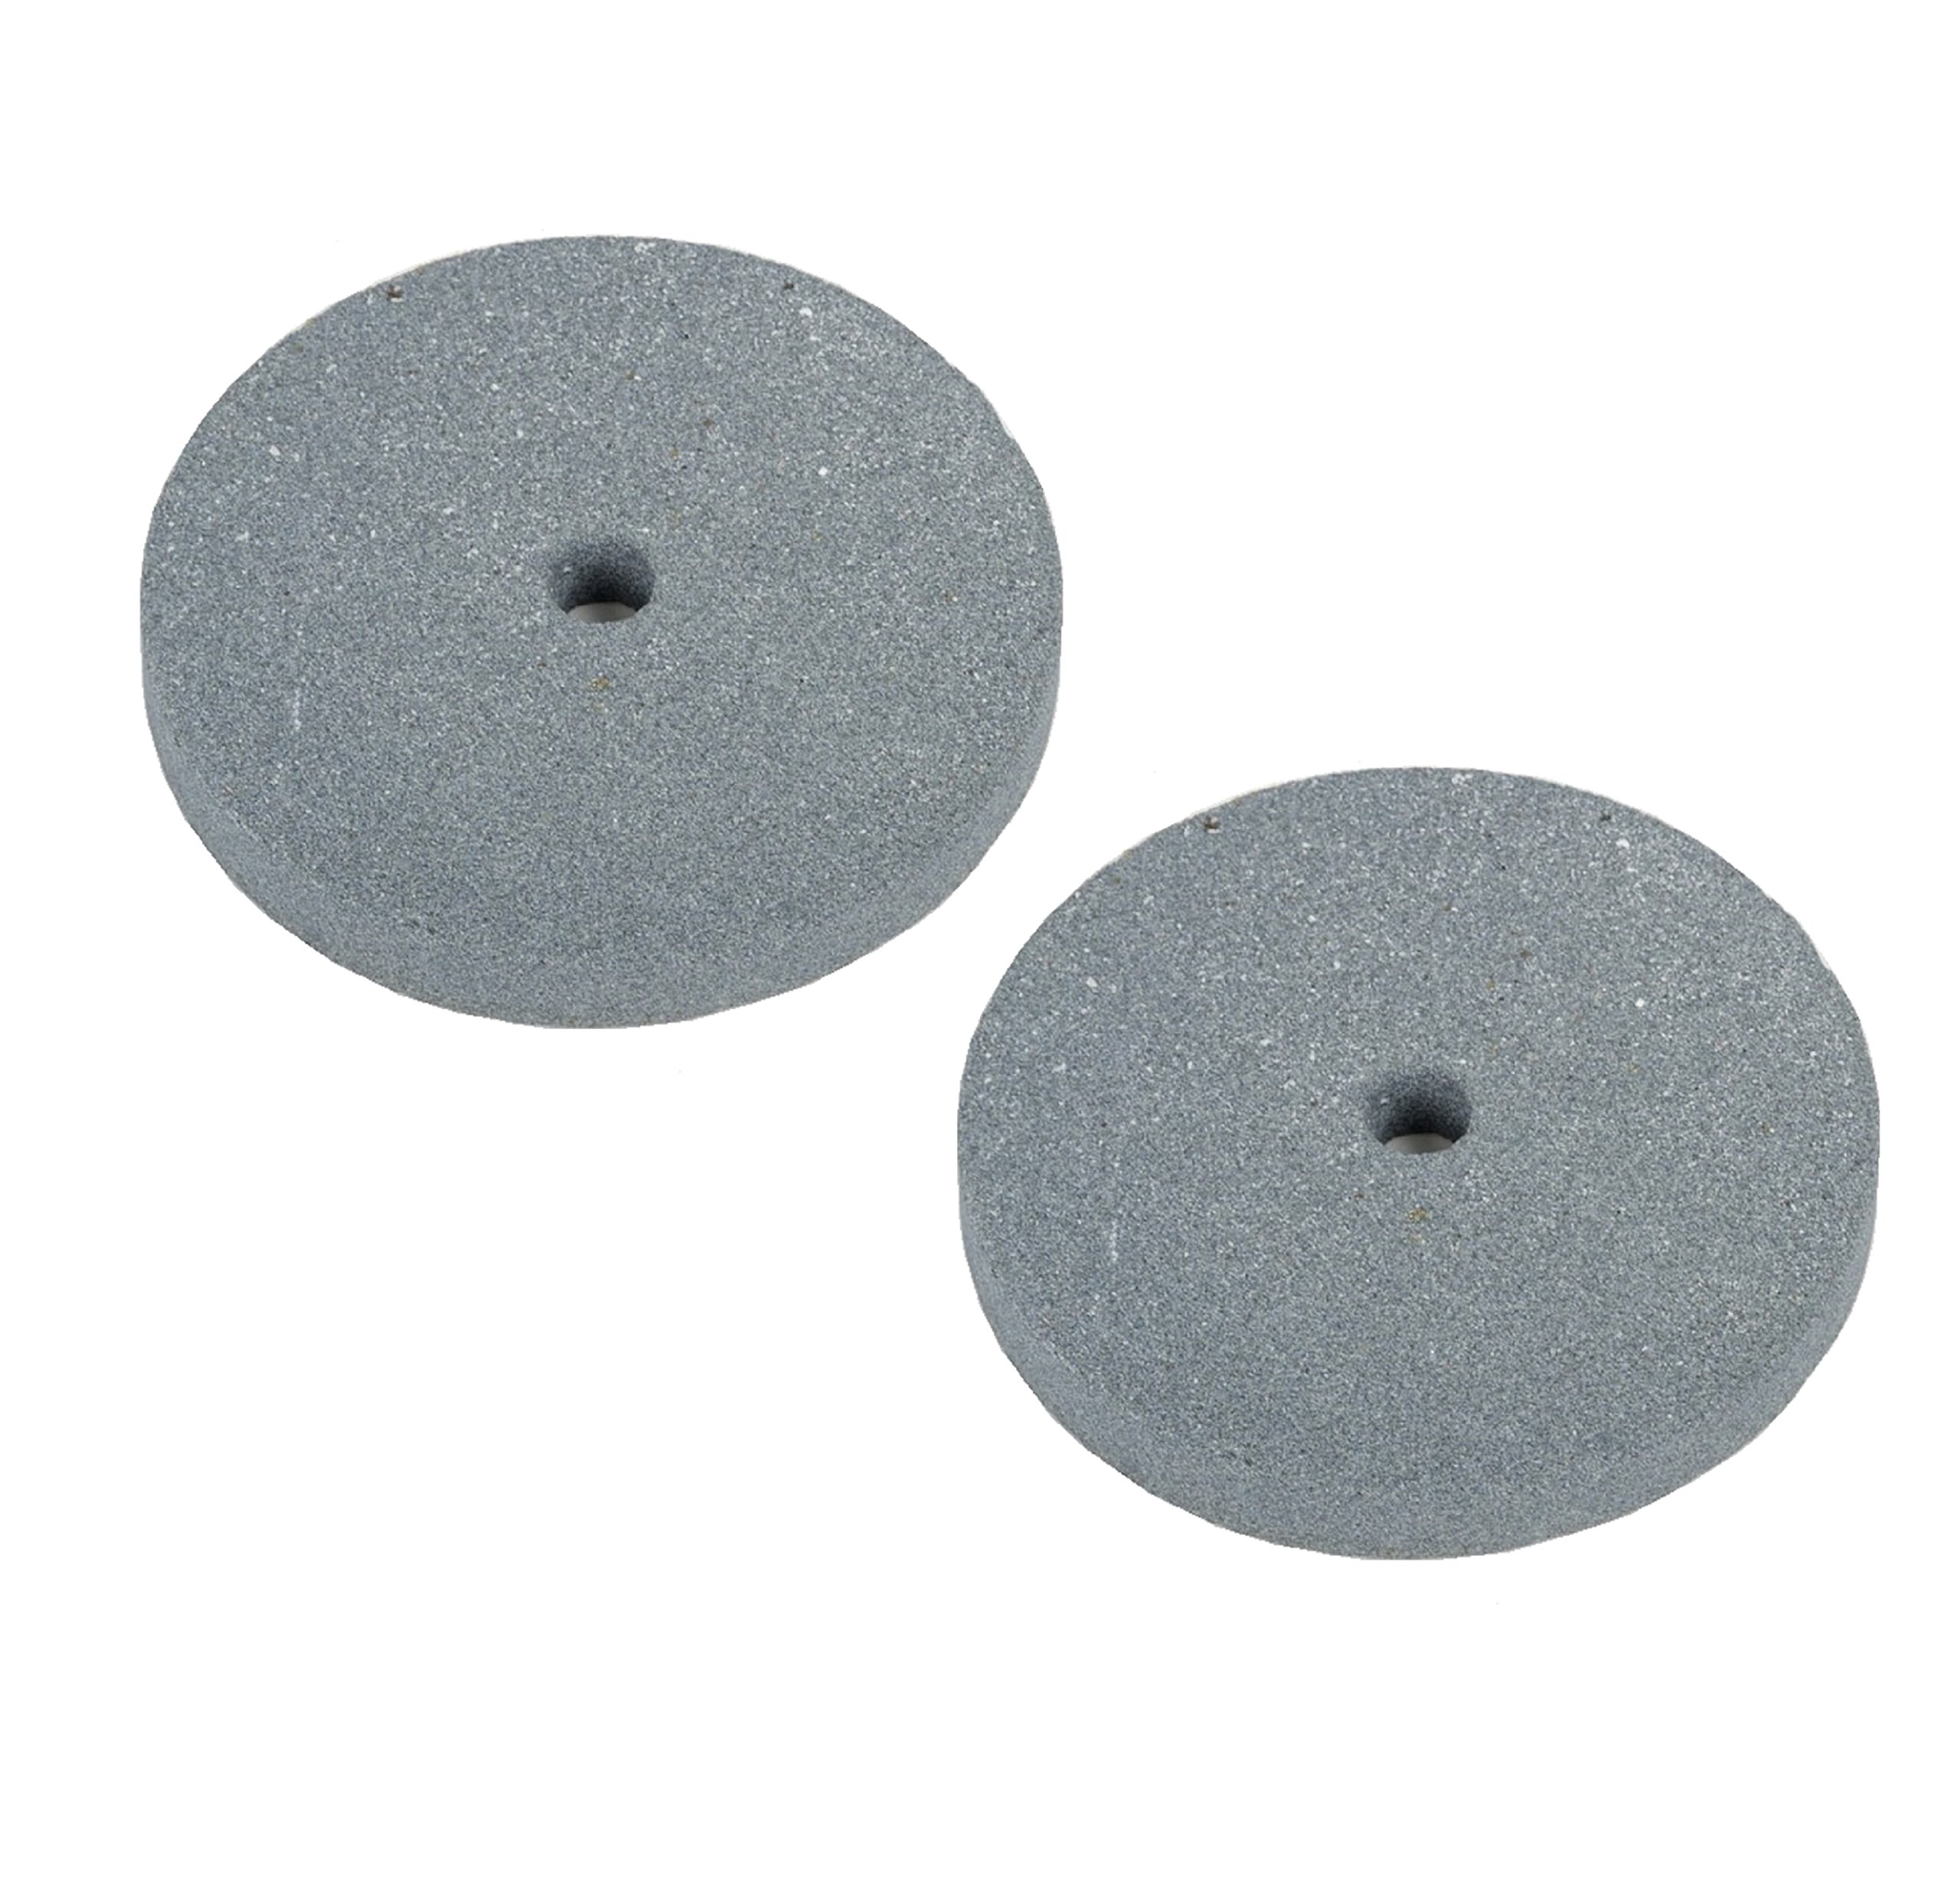 WennoW (2 PC) 6'' Emory Style Grinding Stone Wheel for Bench Grinders - 3/4'' Thick (Fine)